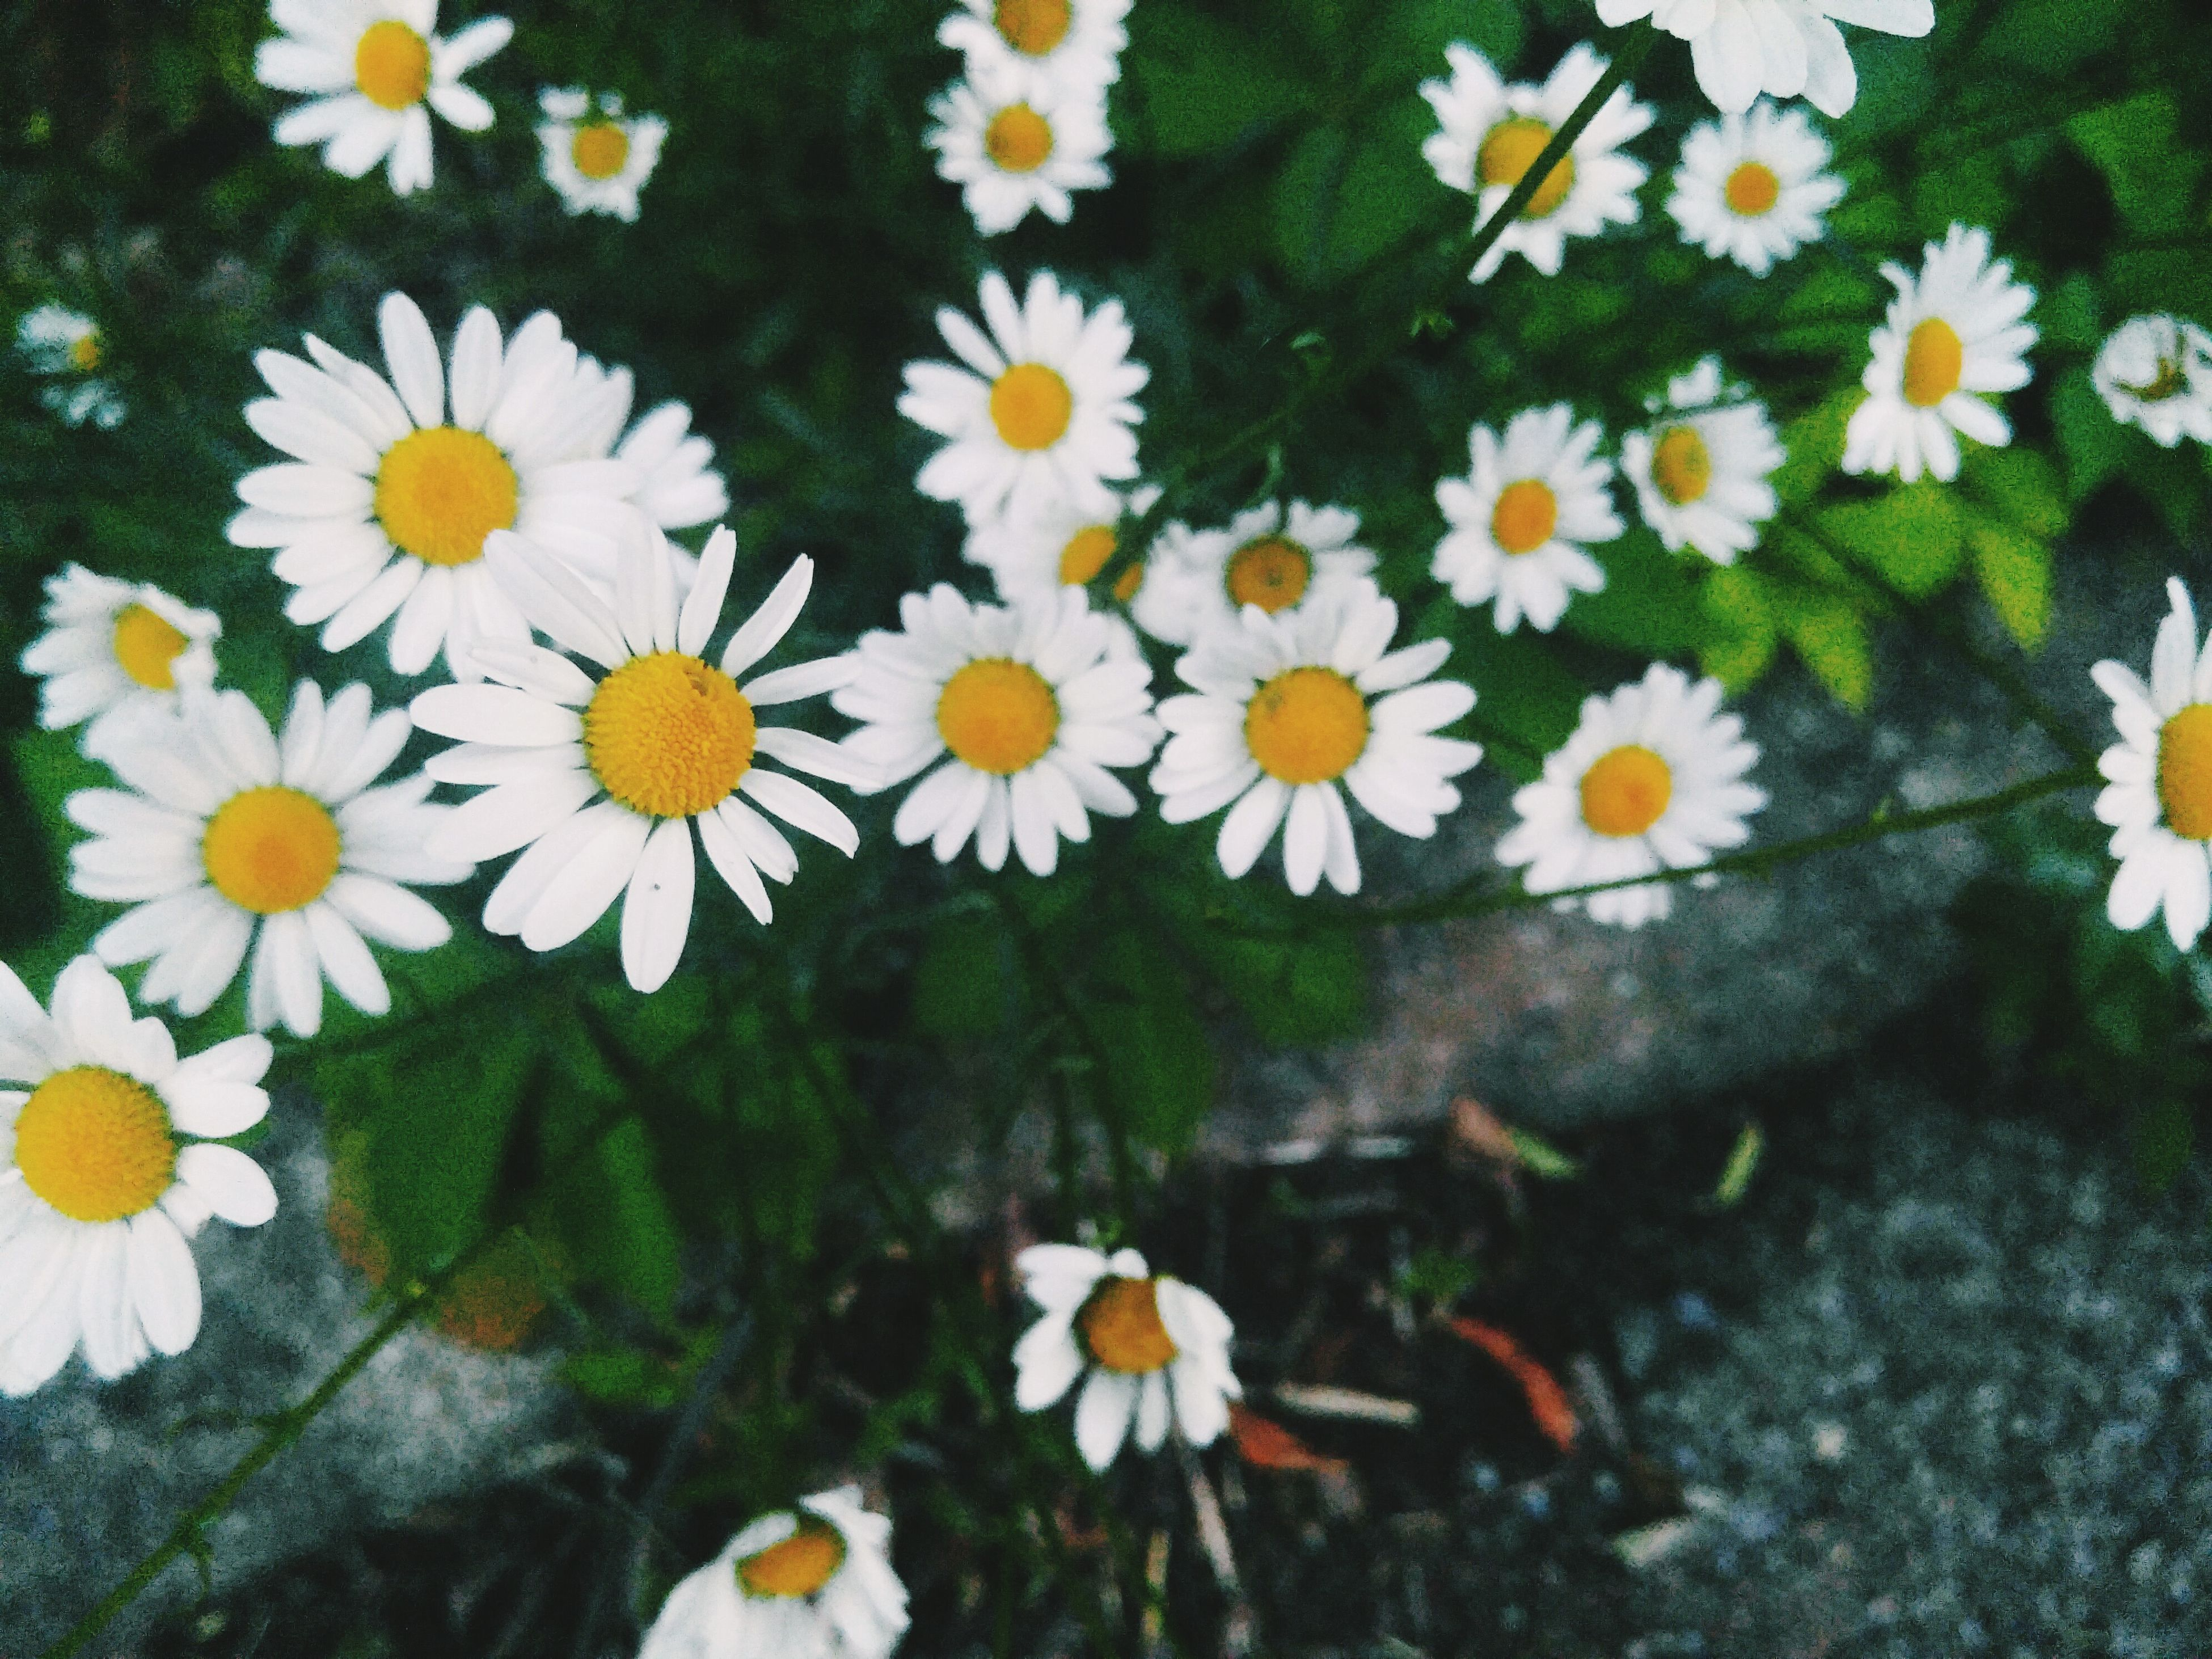 flower, petal, fragility, daisy, freshness, flower head, white color, high angle view, growth, beauty in nature, yellow, blooming, nature, plant, pollen, field, in bloom, close-up, day, outdoors